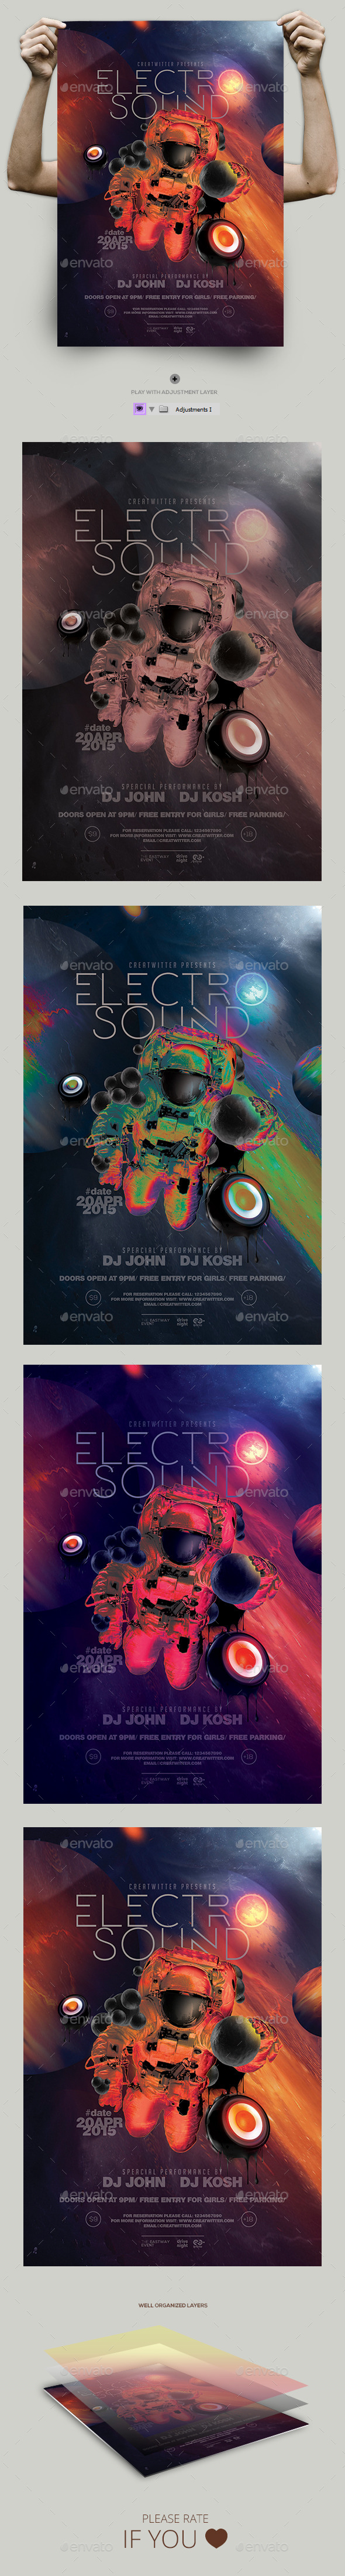 Electro Sounds Flyer/ Poster - Events Flyers